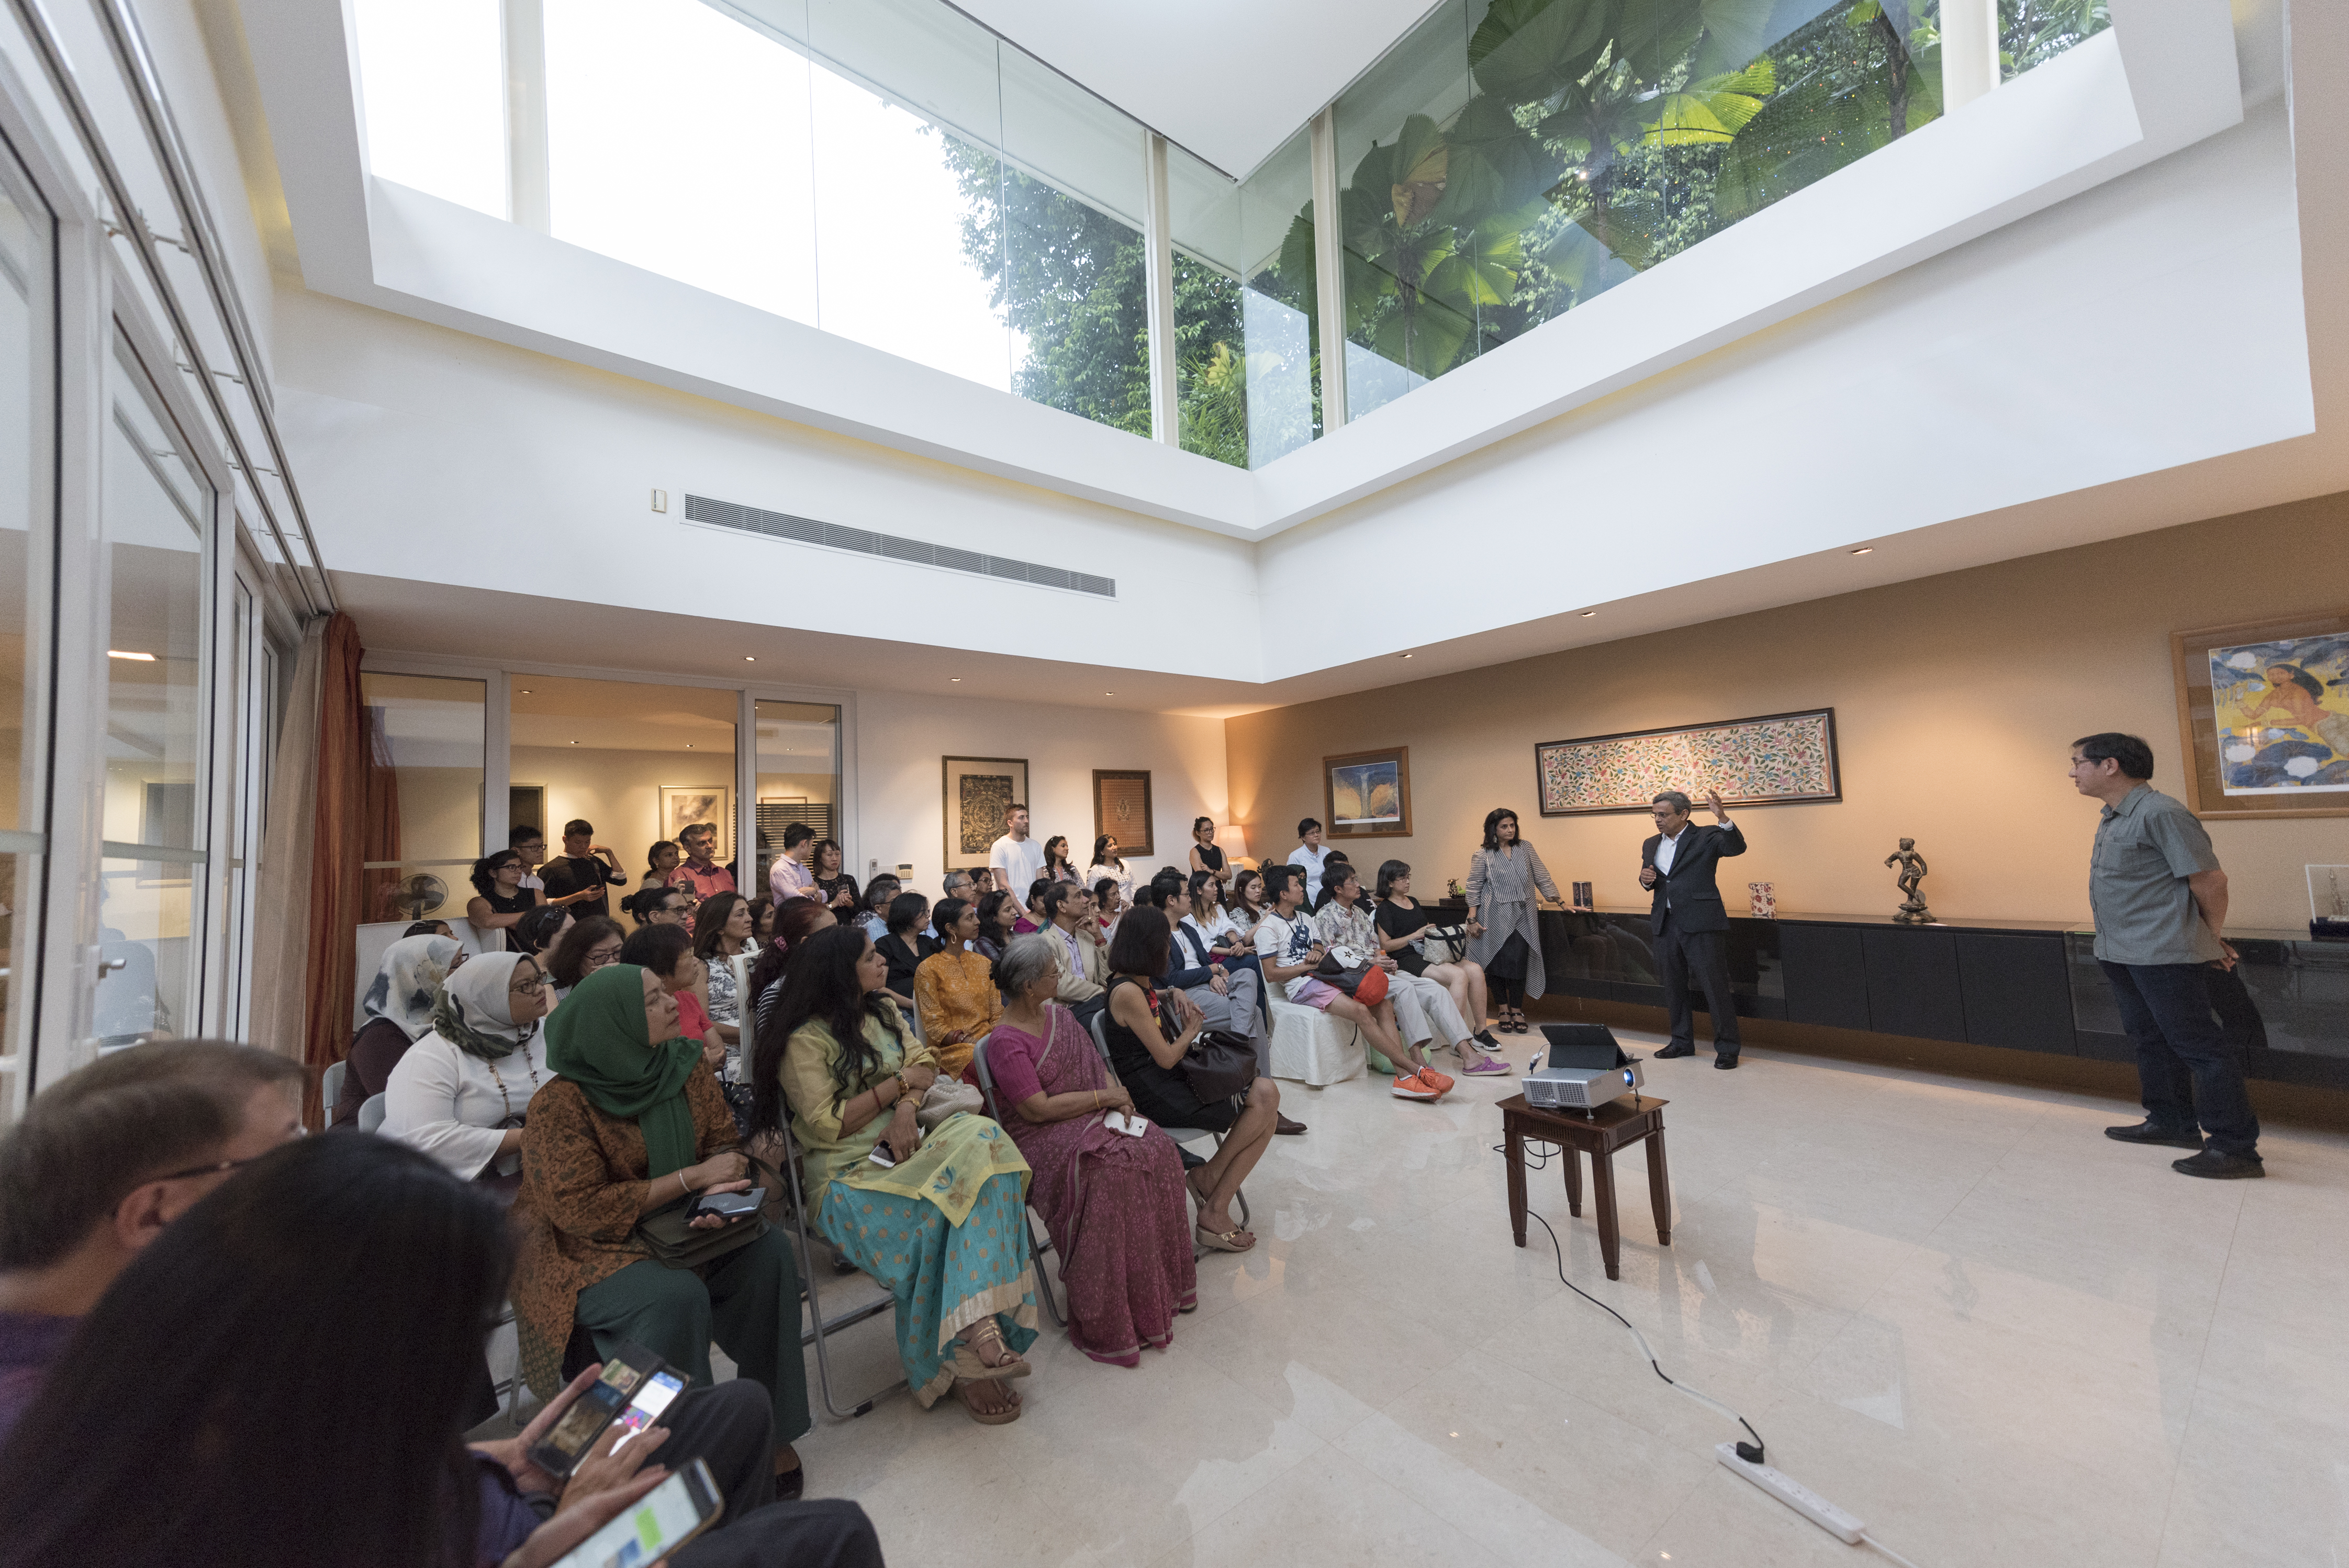 Steven Siow made a presentation of the renovation and conservation at the open house of India House. H.E. Jawed Ashraf, High Commissioner of India to Singapore also shared his experience with the people. Photo courtesy: IDF, Singapore